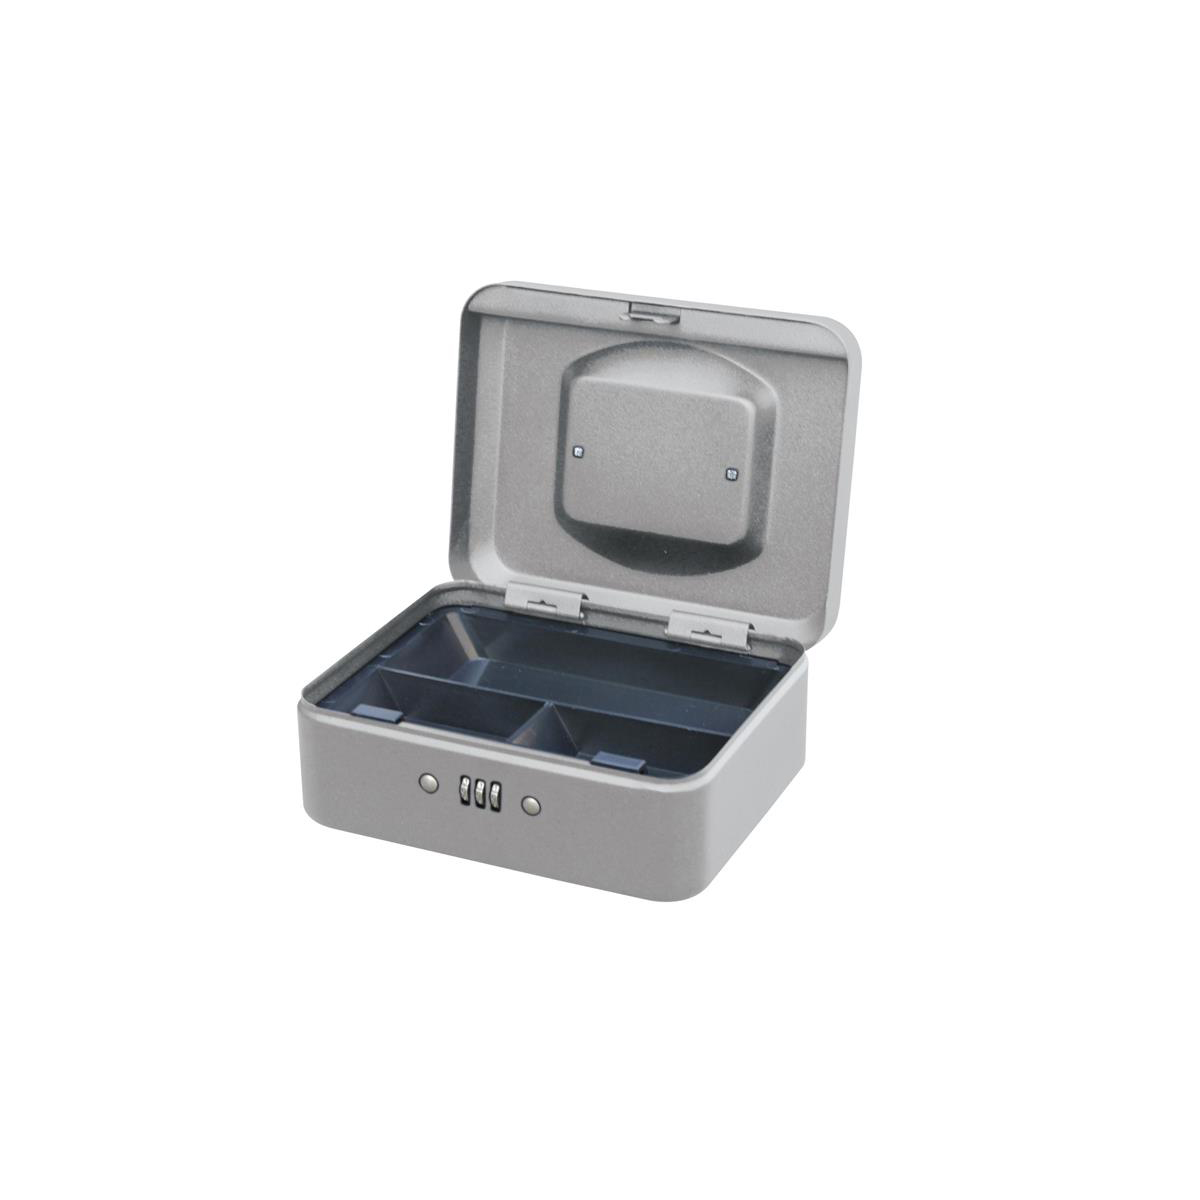 5 Star Facilities Premium Cash Box with Coin Tray Metal Combination Lock W200xD160xH90mm Grey